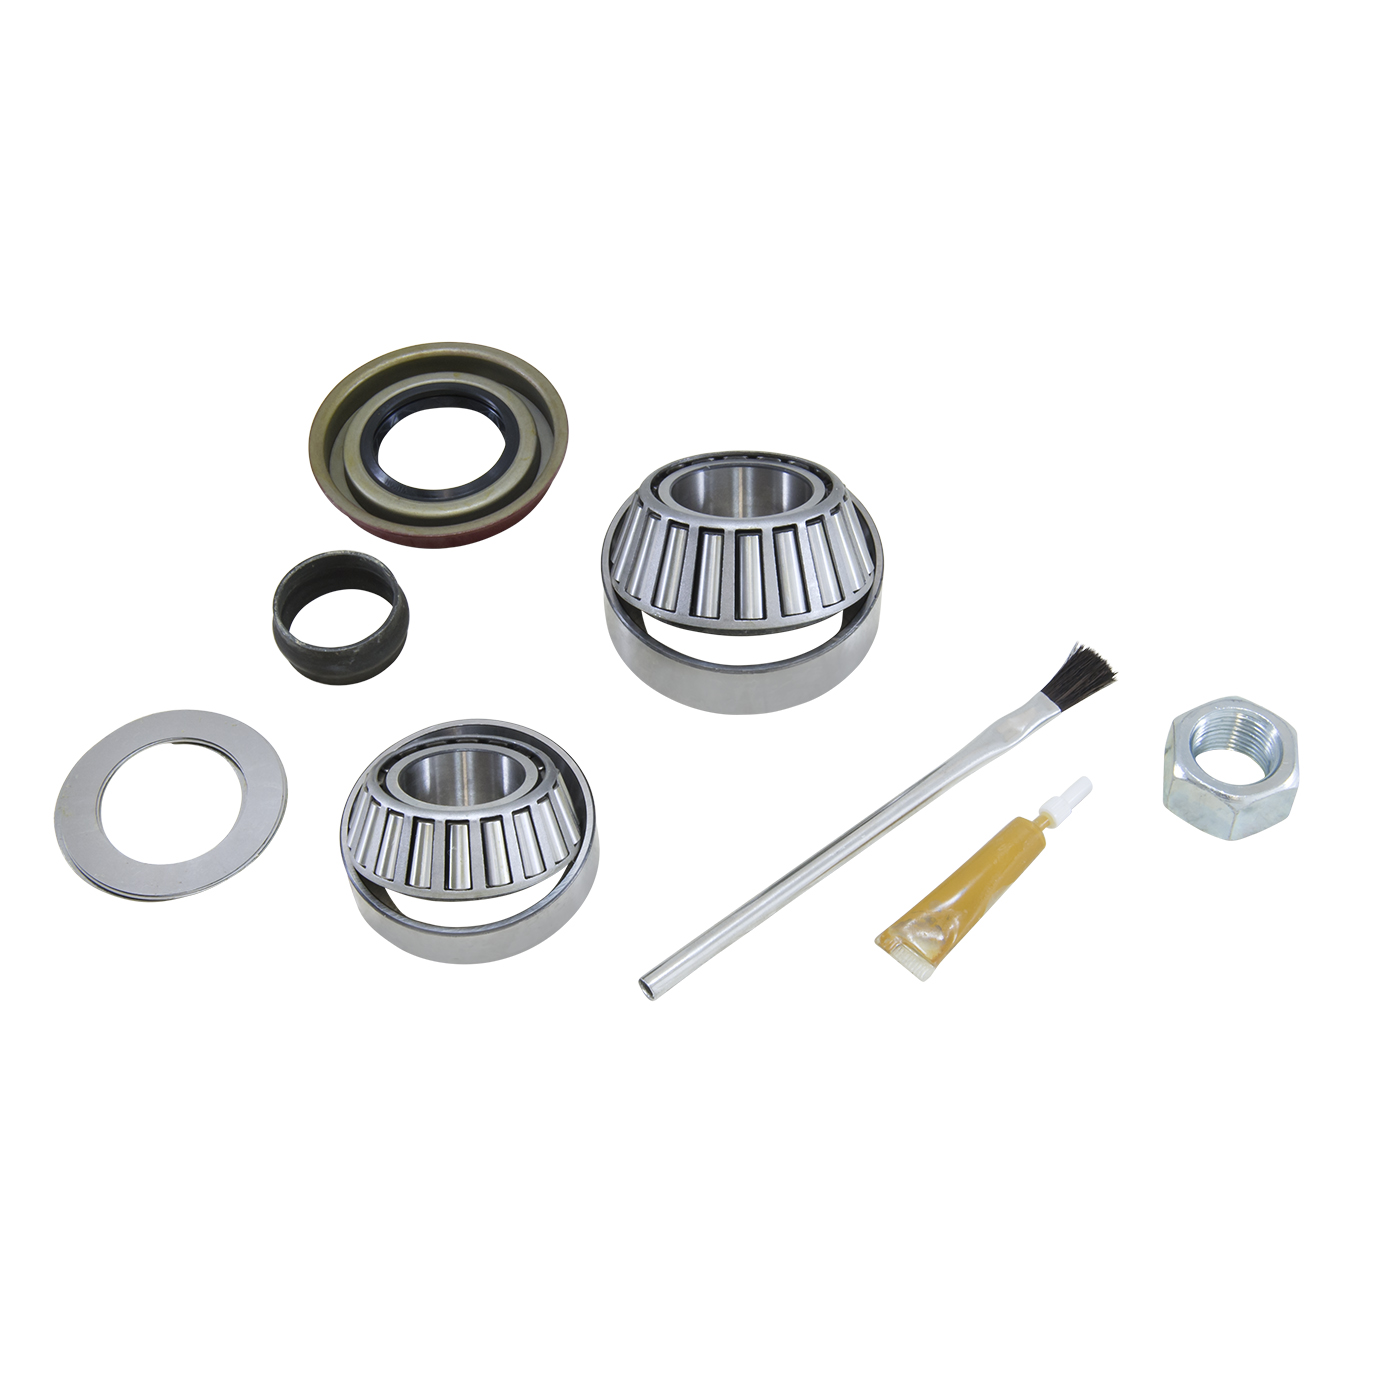 PK GM7.5-B - Yukon Pinion install kit for GM 7.5